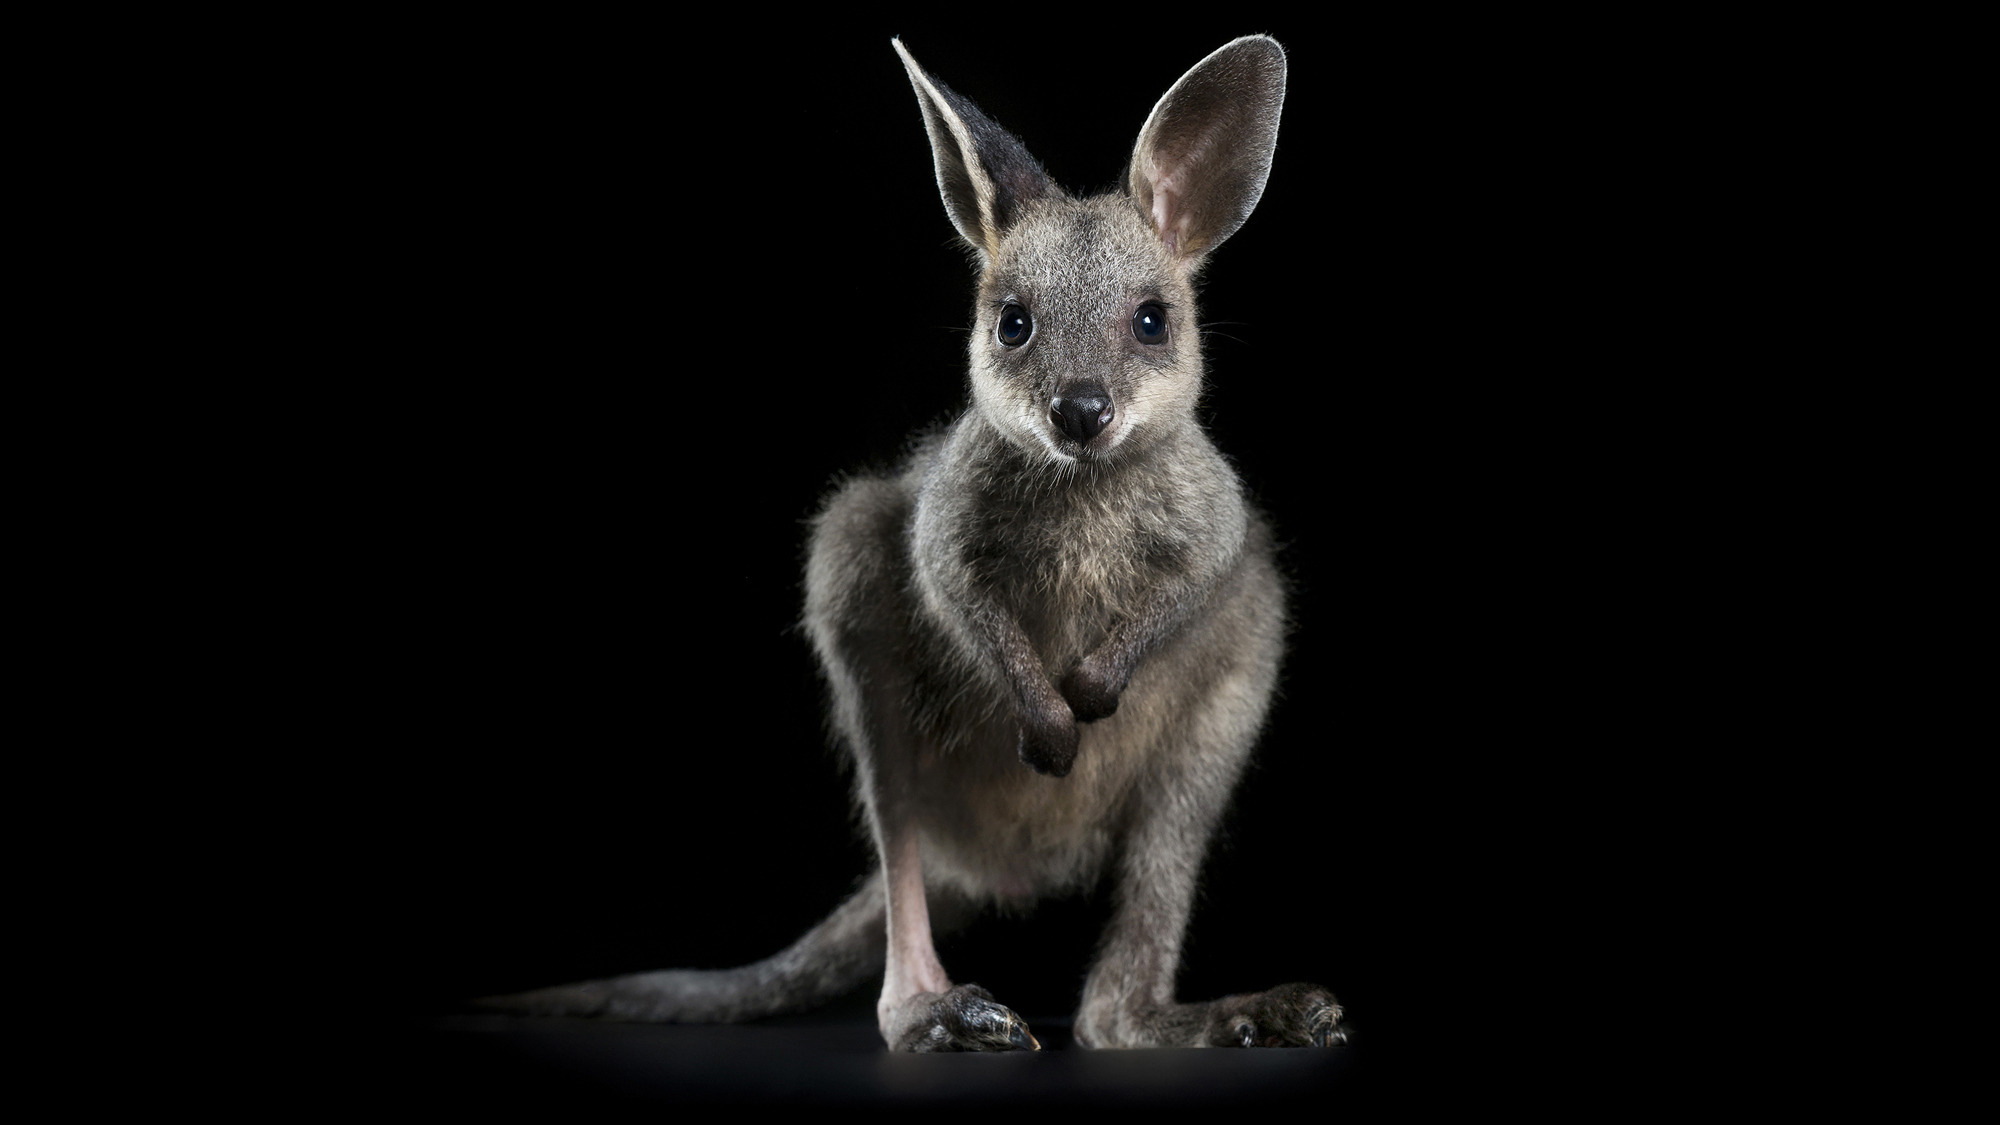 Wallaby-cute-baby-australia-wildlife-help-save-bushfire